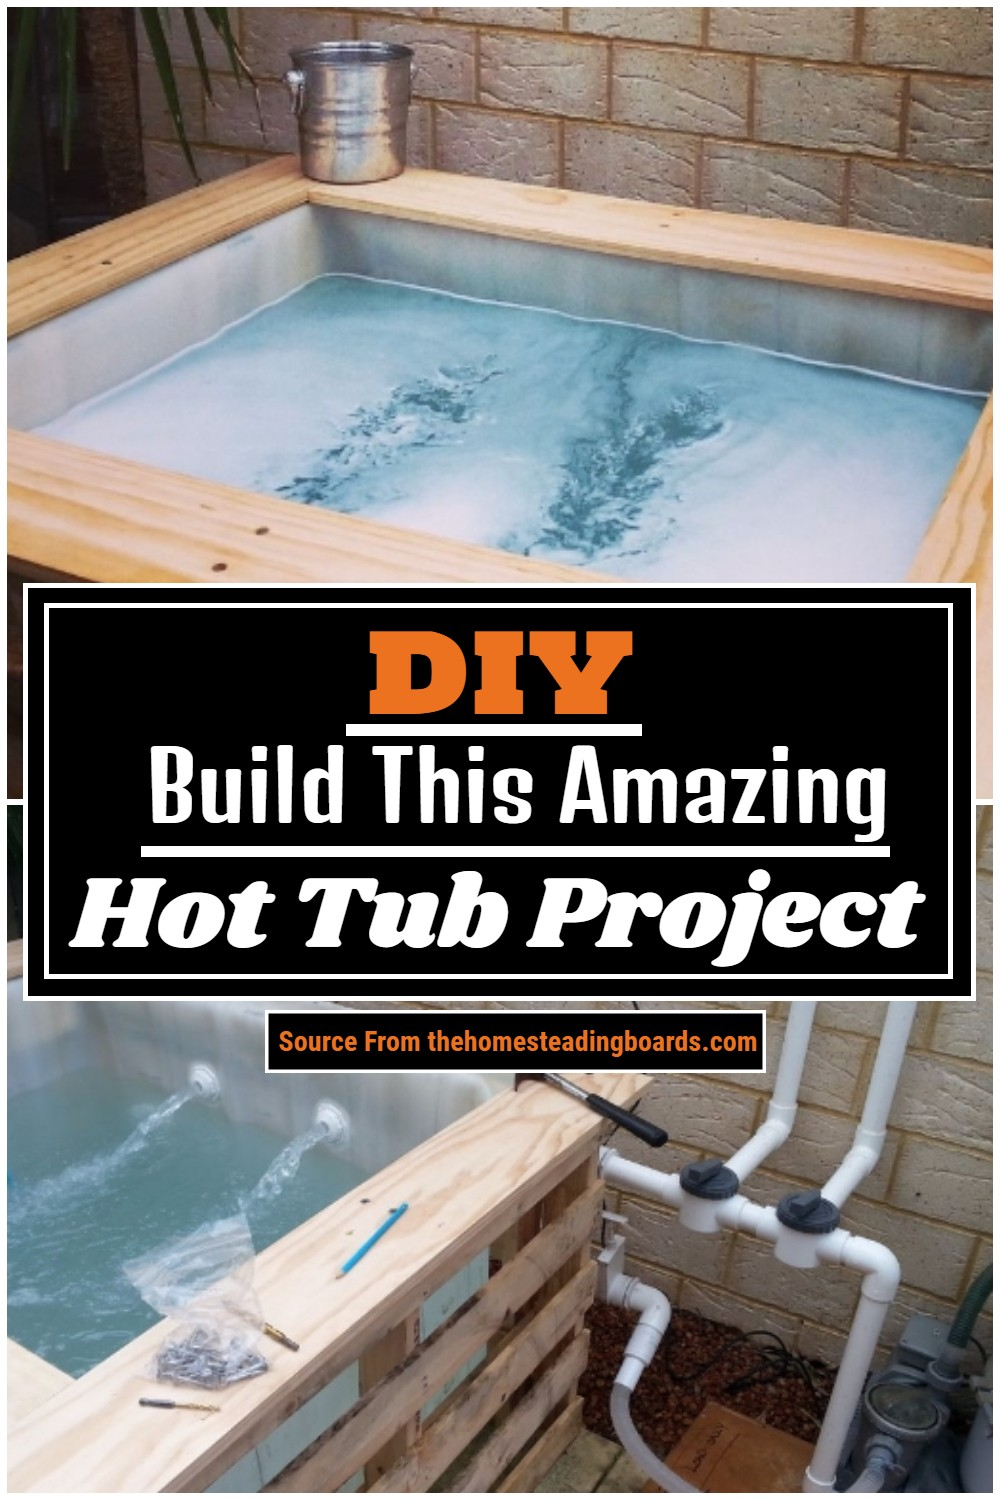 DIY Build This Amazing Hot Tub Project